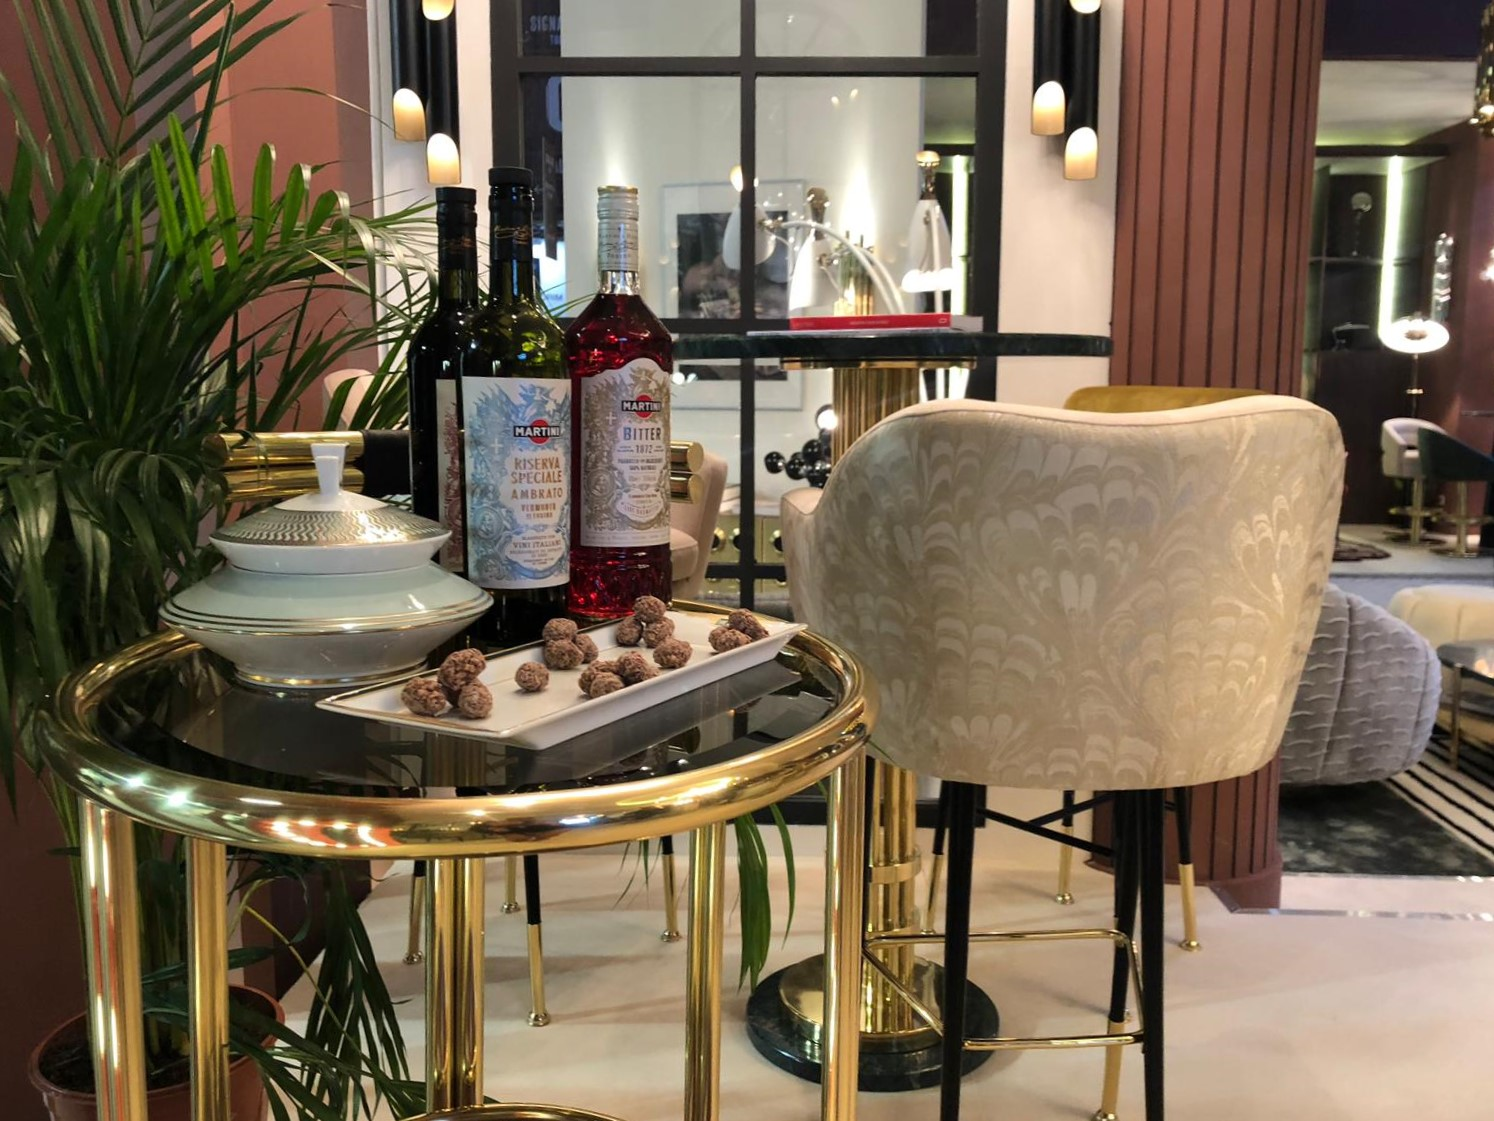 Almost Coming To Na End, See What You Missed At Maison Et Objet 2019 3 Maison Et Objet 2019 Almost Coming To An End, See What You Missed At Maison Et Objet 2019 Almost Coming To Na End See What You Missed At Maison Et Objet 2019 5